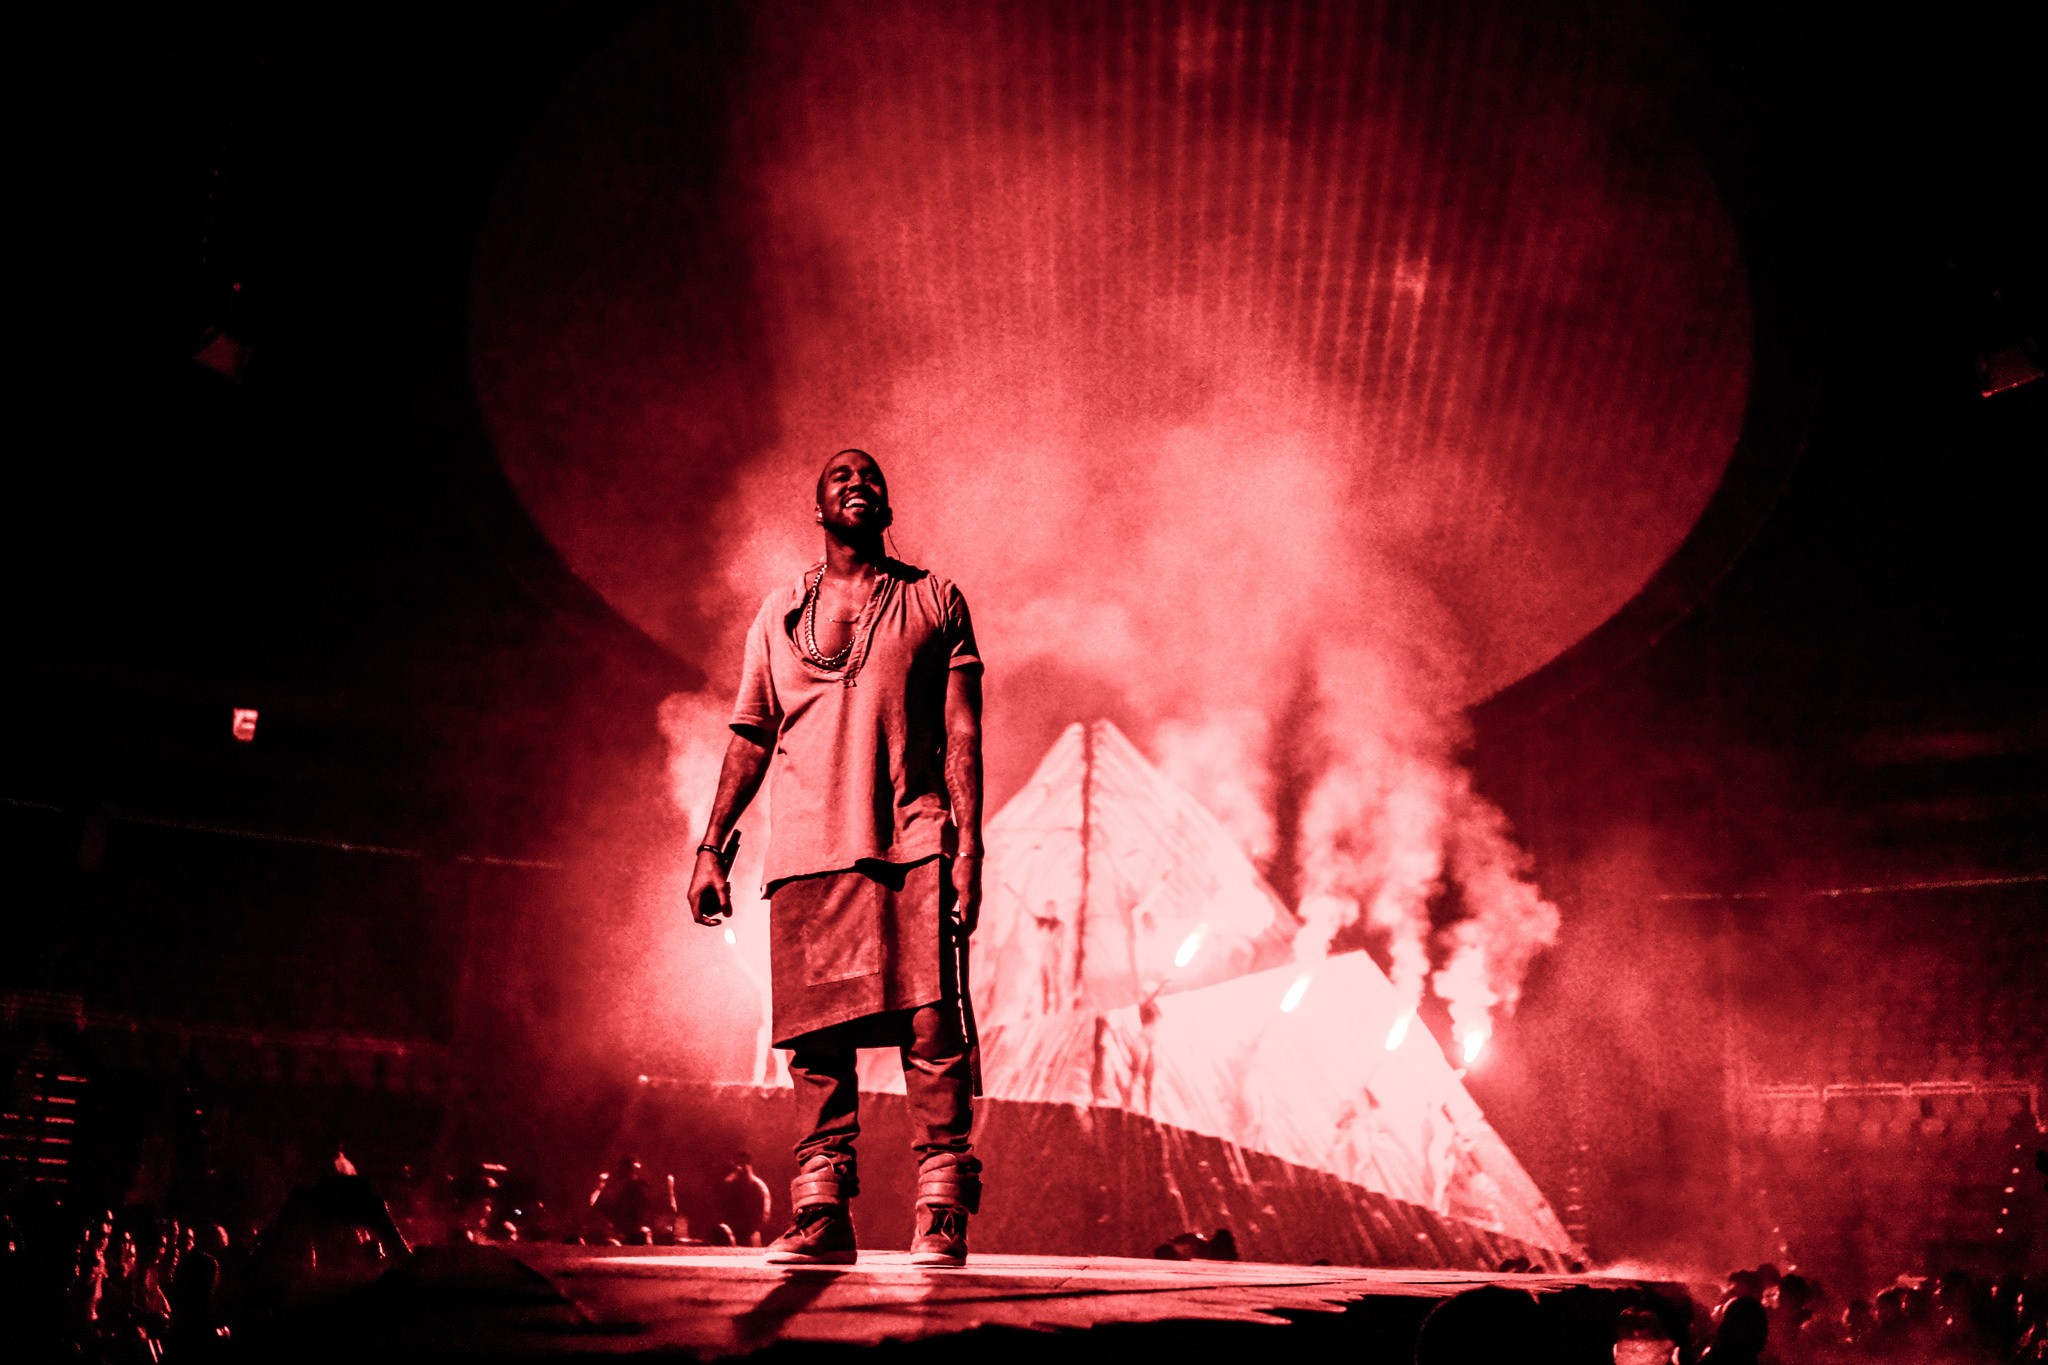 2048x1365 HD YEEZUS Tour Wallpapers Desktop Phone UPDATED Download Beautiful Kanye West Wallpaper 1920x1080 For Iphone